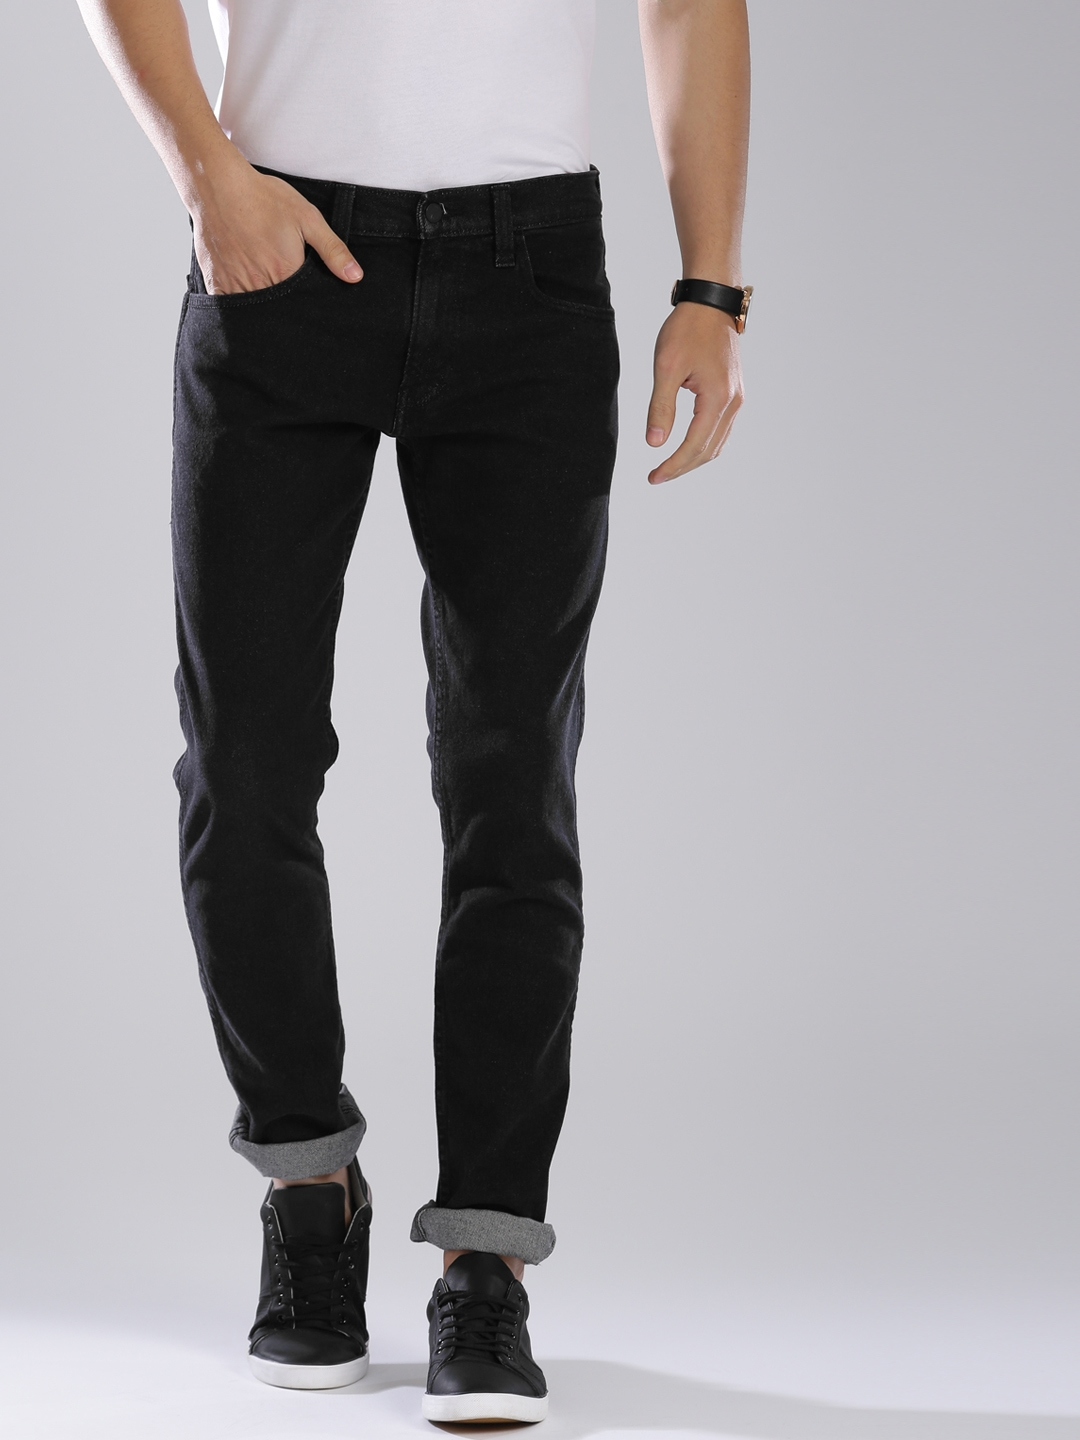 ef97b1e4 Levis Men Black 65504 Skinny Fit Low Rise Clean Look Stretchable